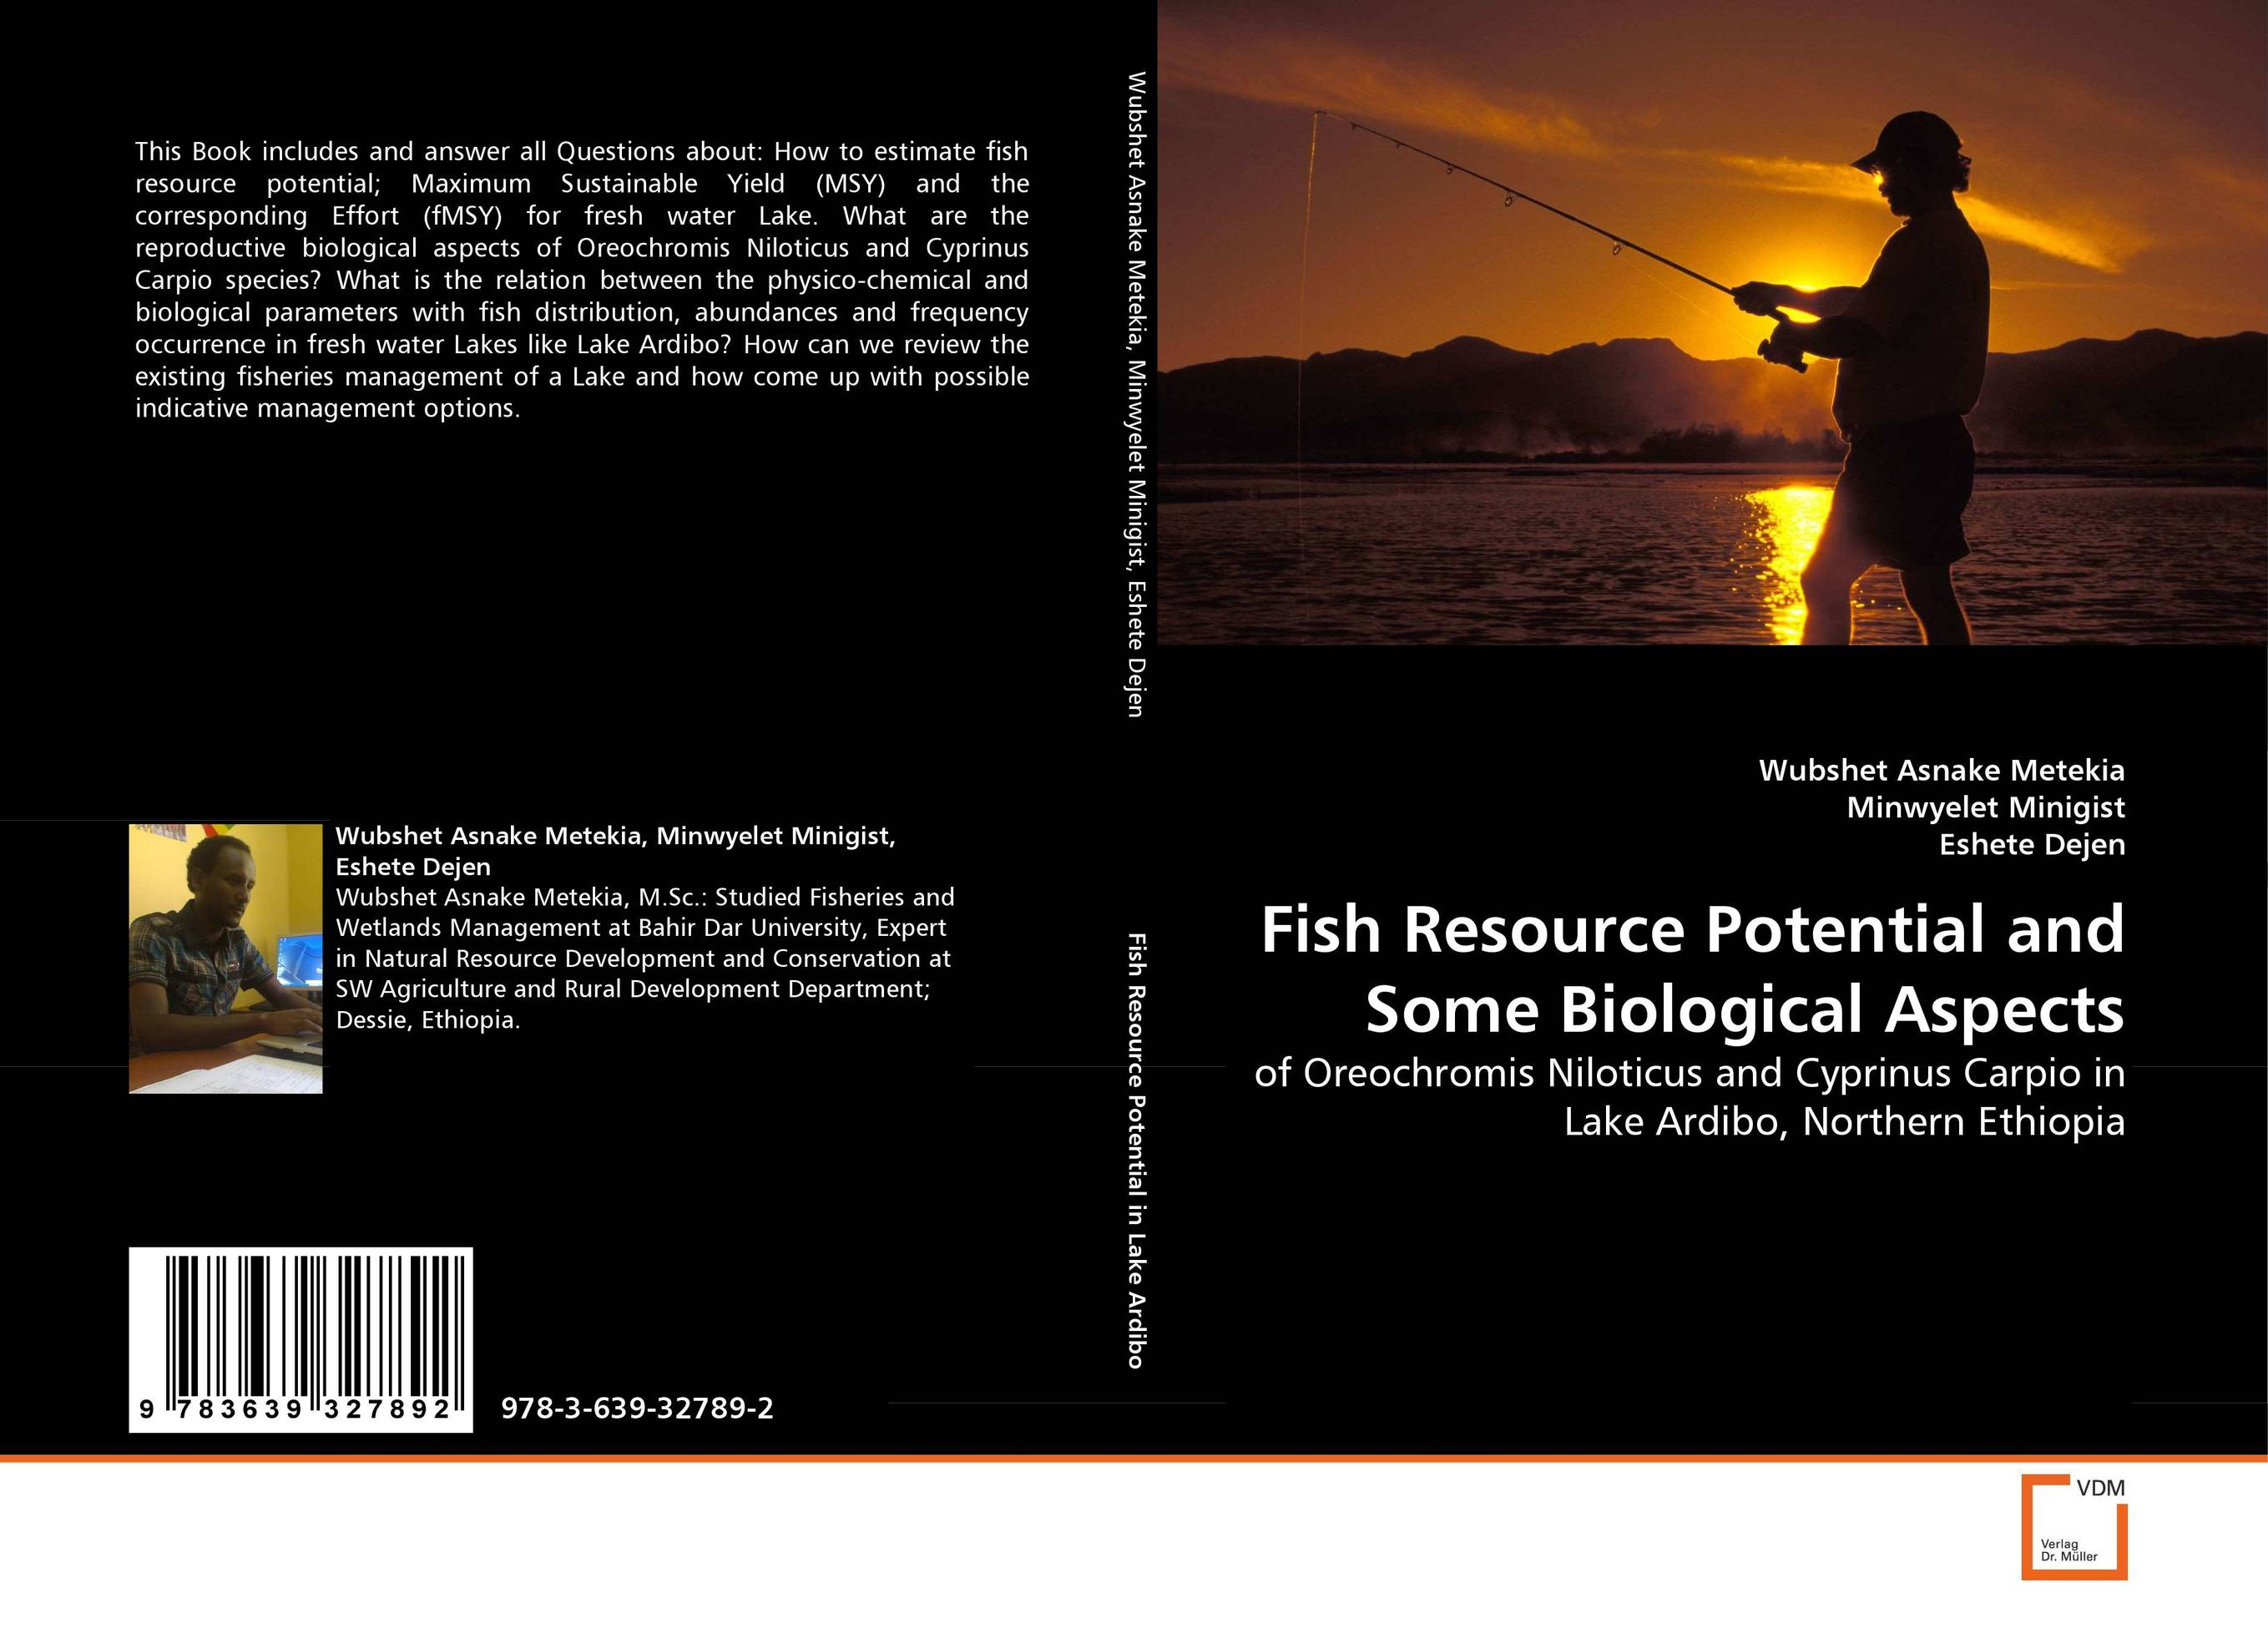 Fish Resource Potential and Some Biological Aspects chemical and microbiological hazards associated with fresh water fish